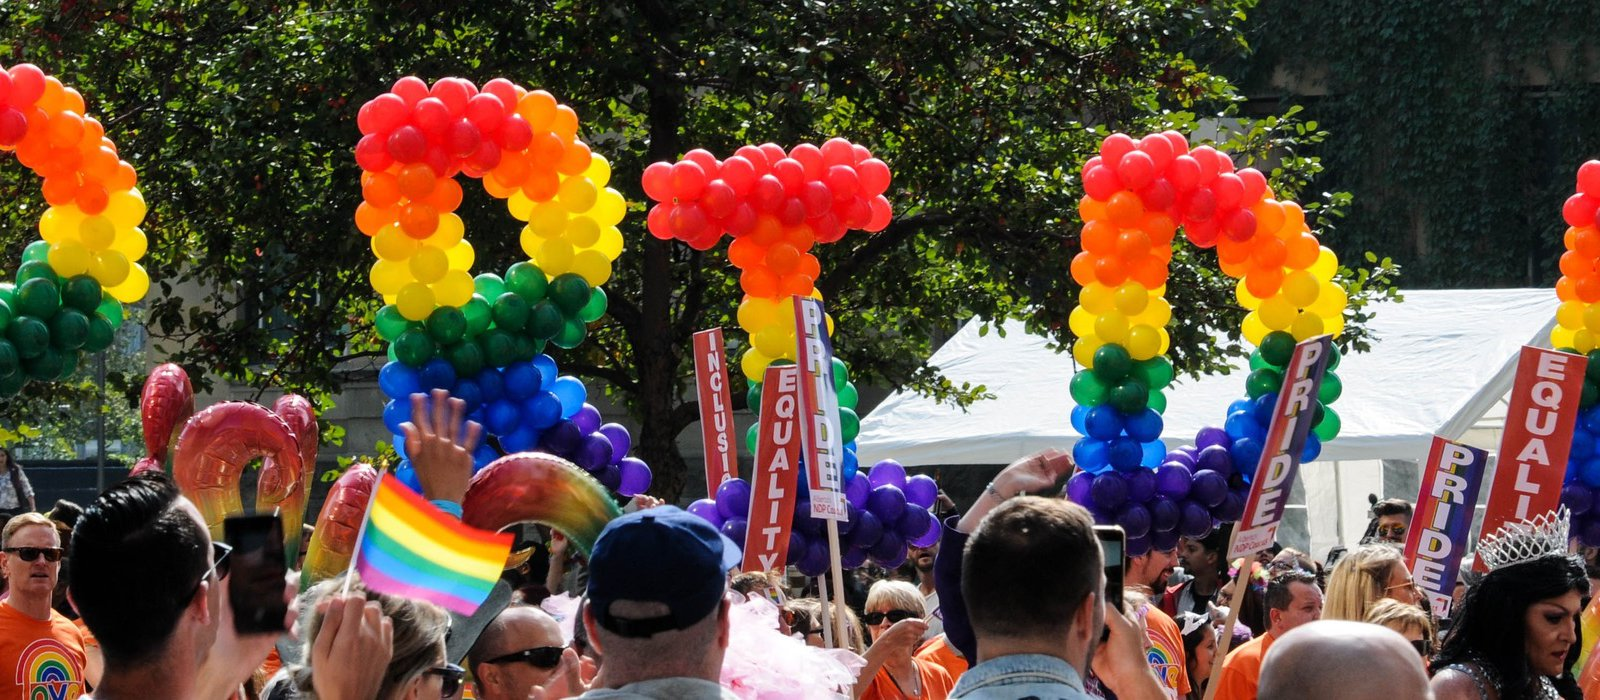 5 Ways to Celebrate LGBTQ+ Pride With a Purpose This Year